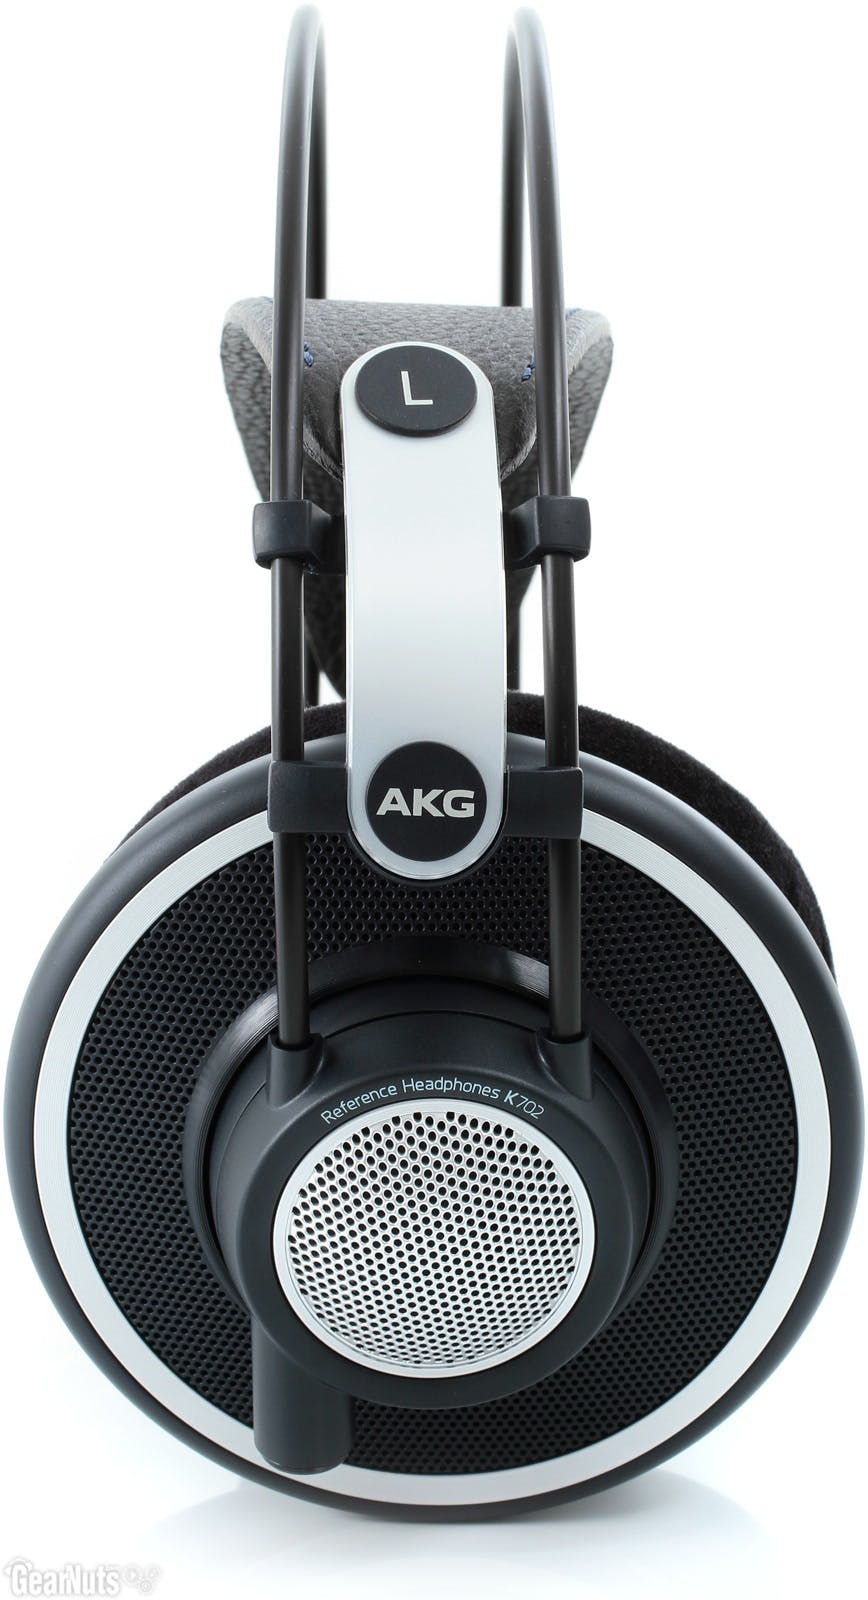 4143bdc6566 AKG K702 Reference, Open, Over-ear Studio Headphones - Andertons Music Co.